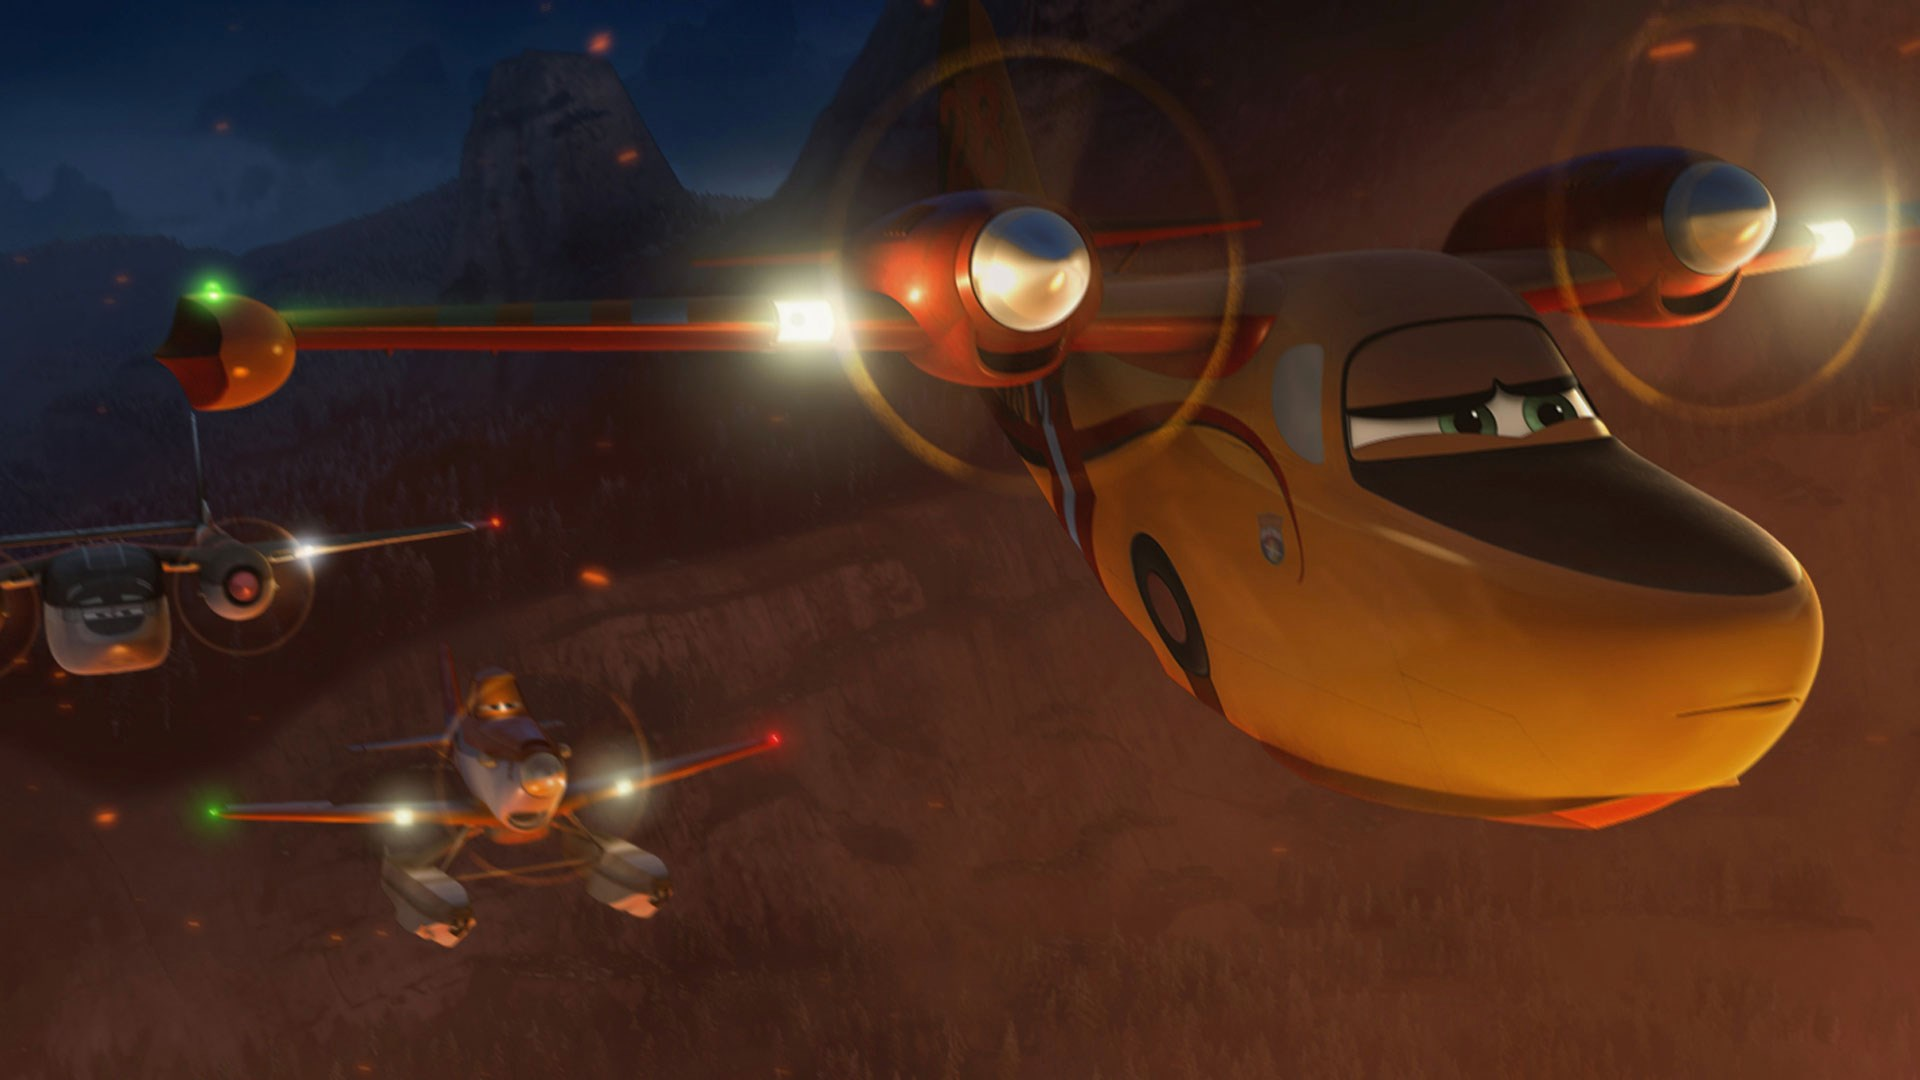 1920x1080-images-planes-fire-and-rescue-wallpaper-wpc5801018